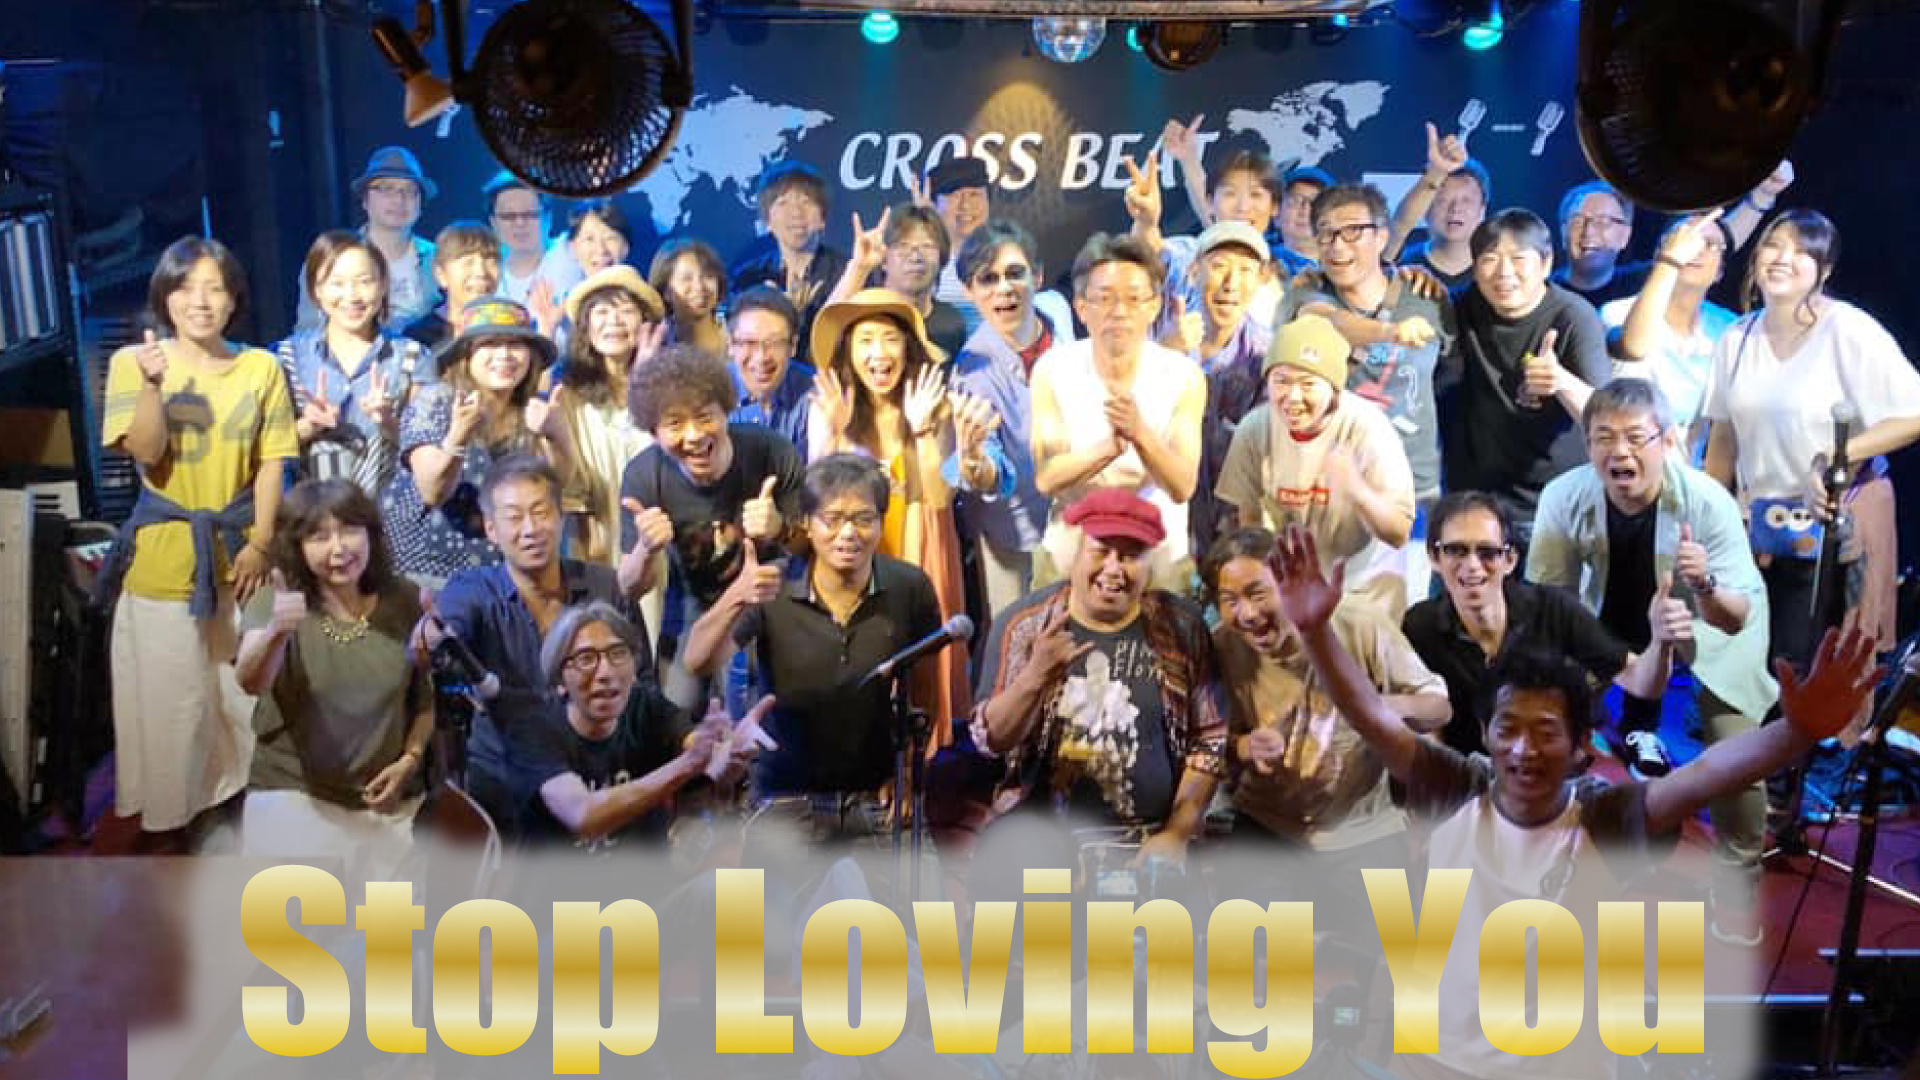 【Stop Loving You】 https://youtu.be/5FMQ5EeKO2g -TOTO祭り2019